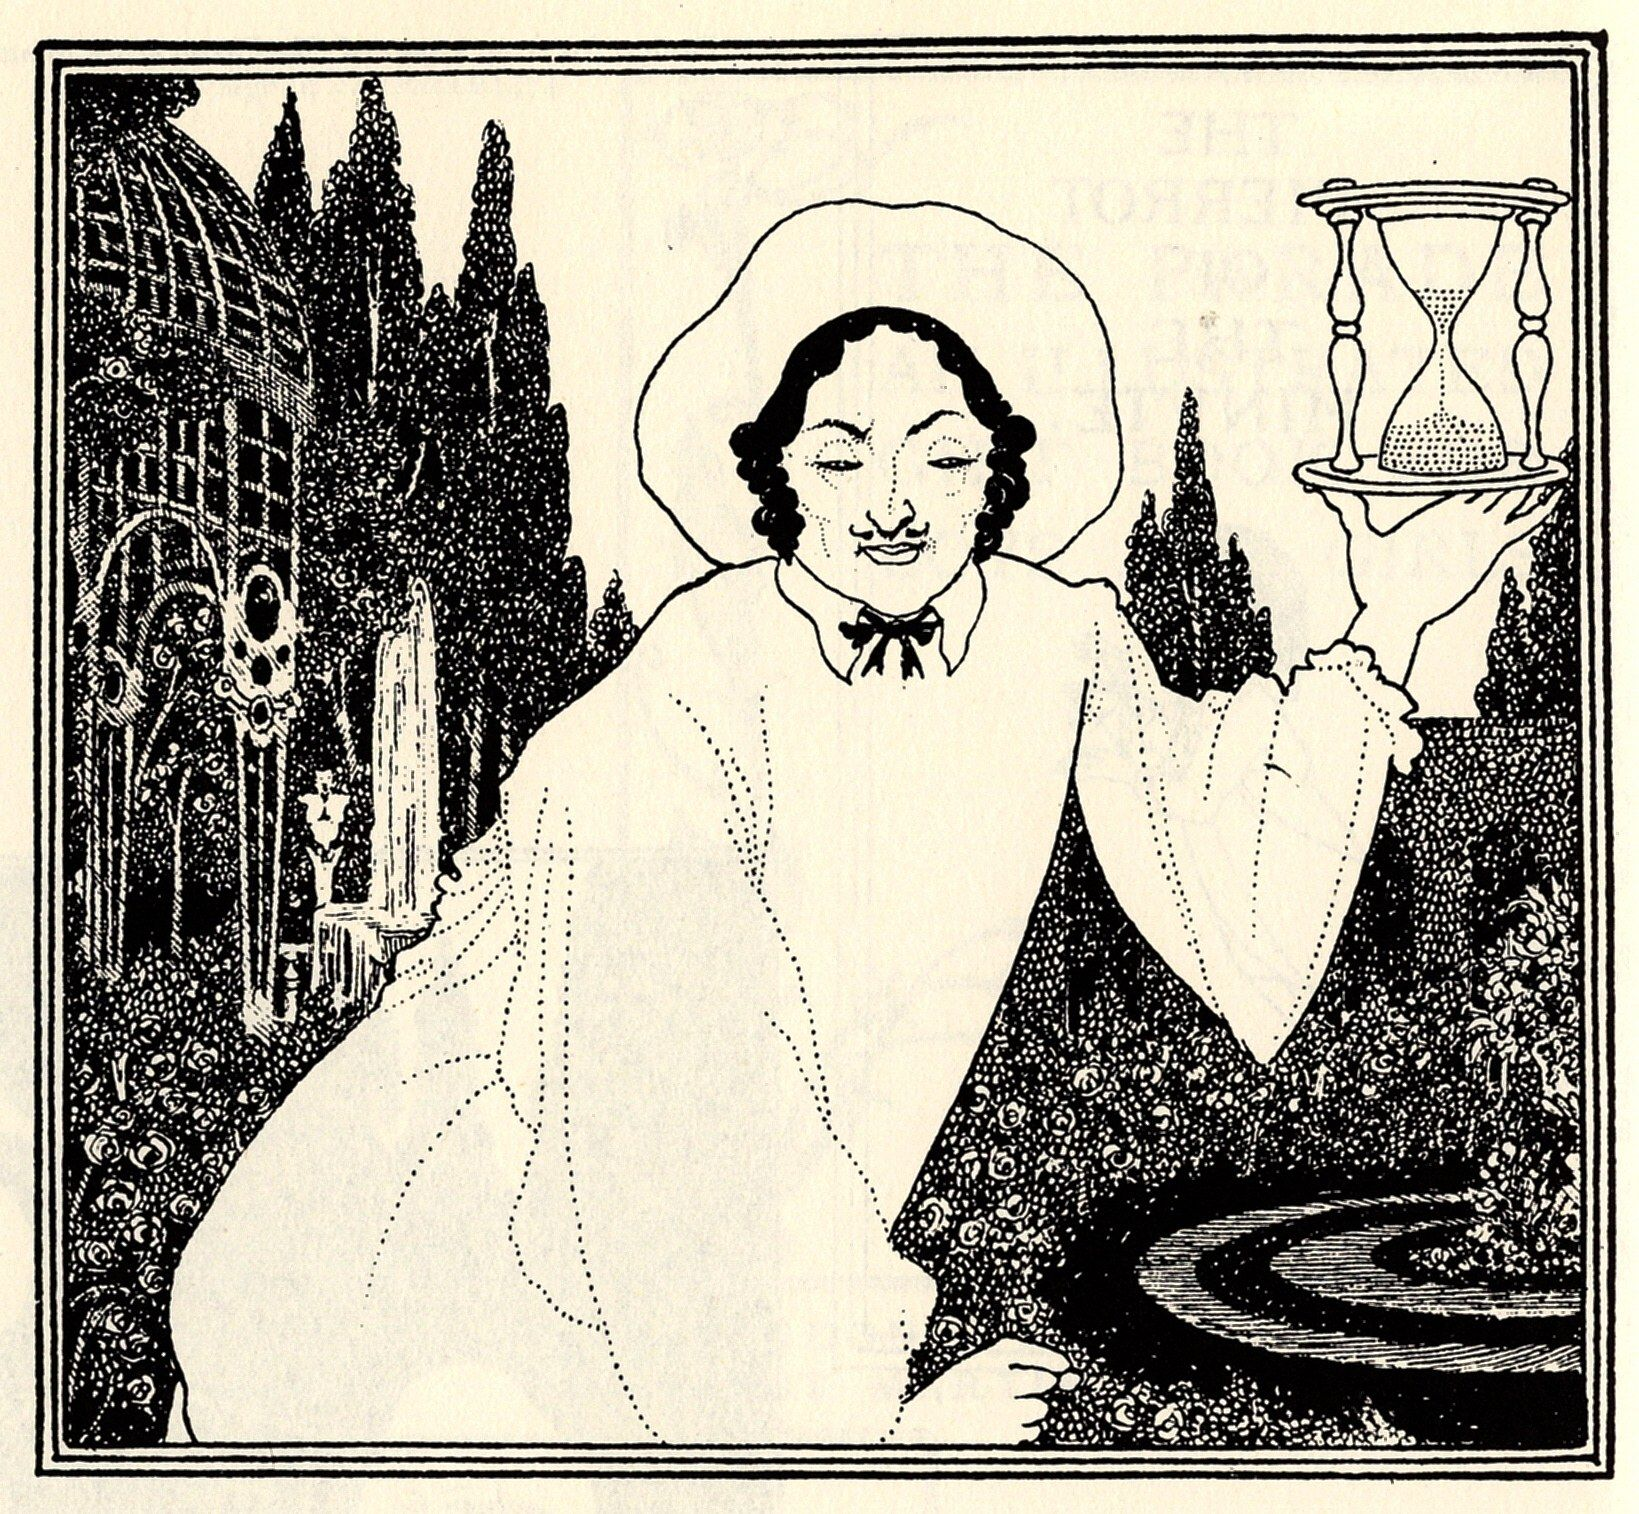 Cover design to 'The Pierrot of the Minute' - Aubrey Beardsley | illustration, black & white